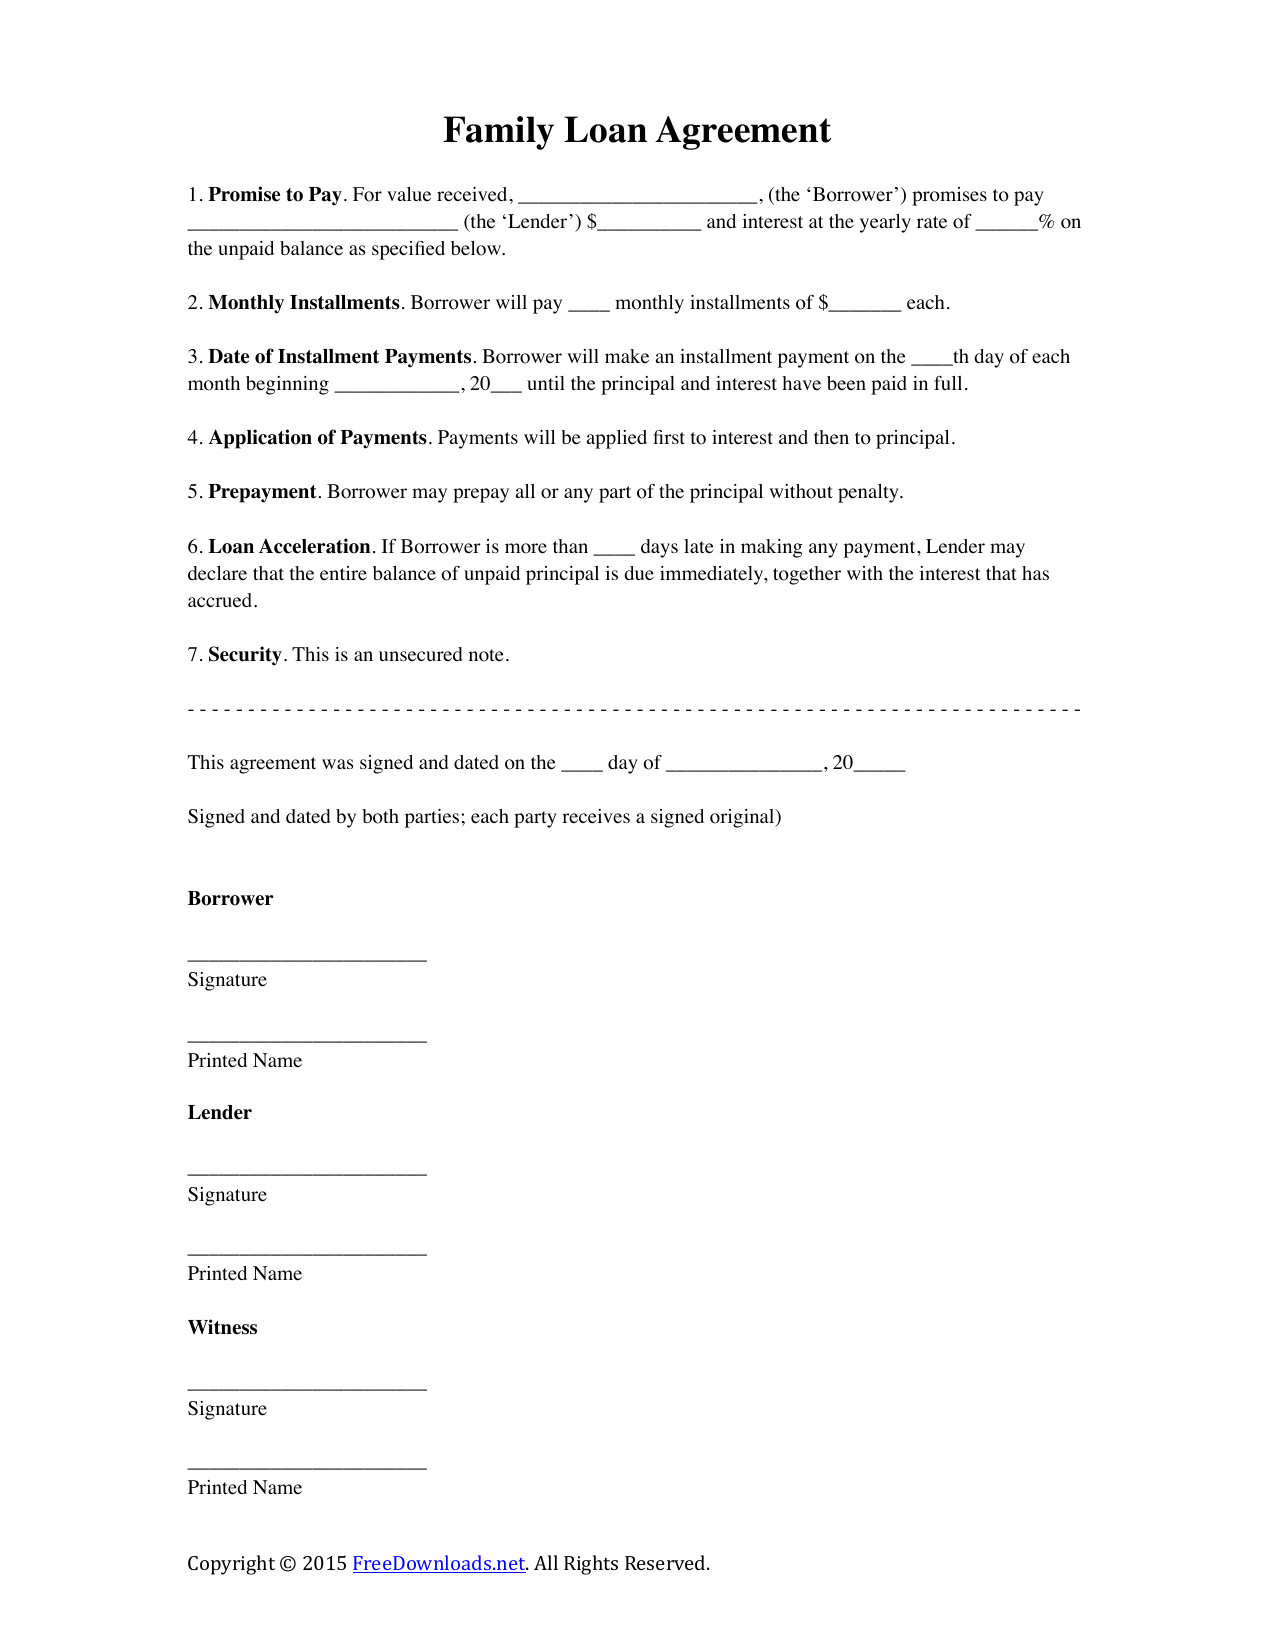 family loan agreement template 2